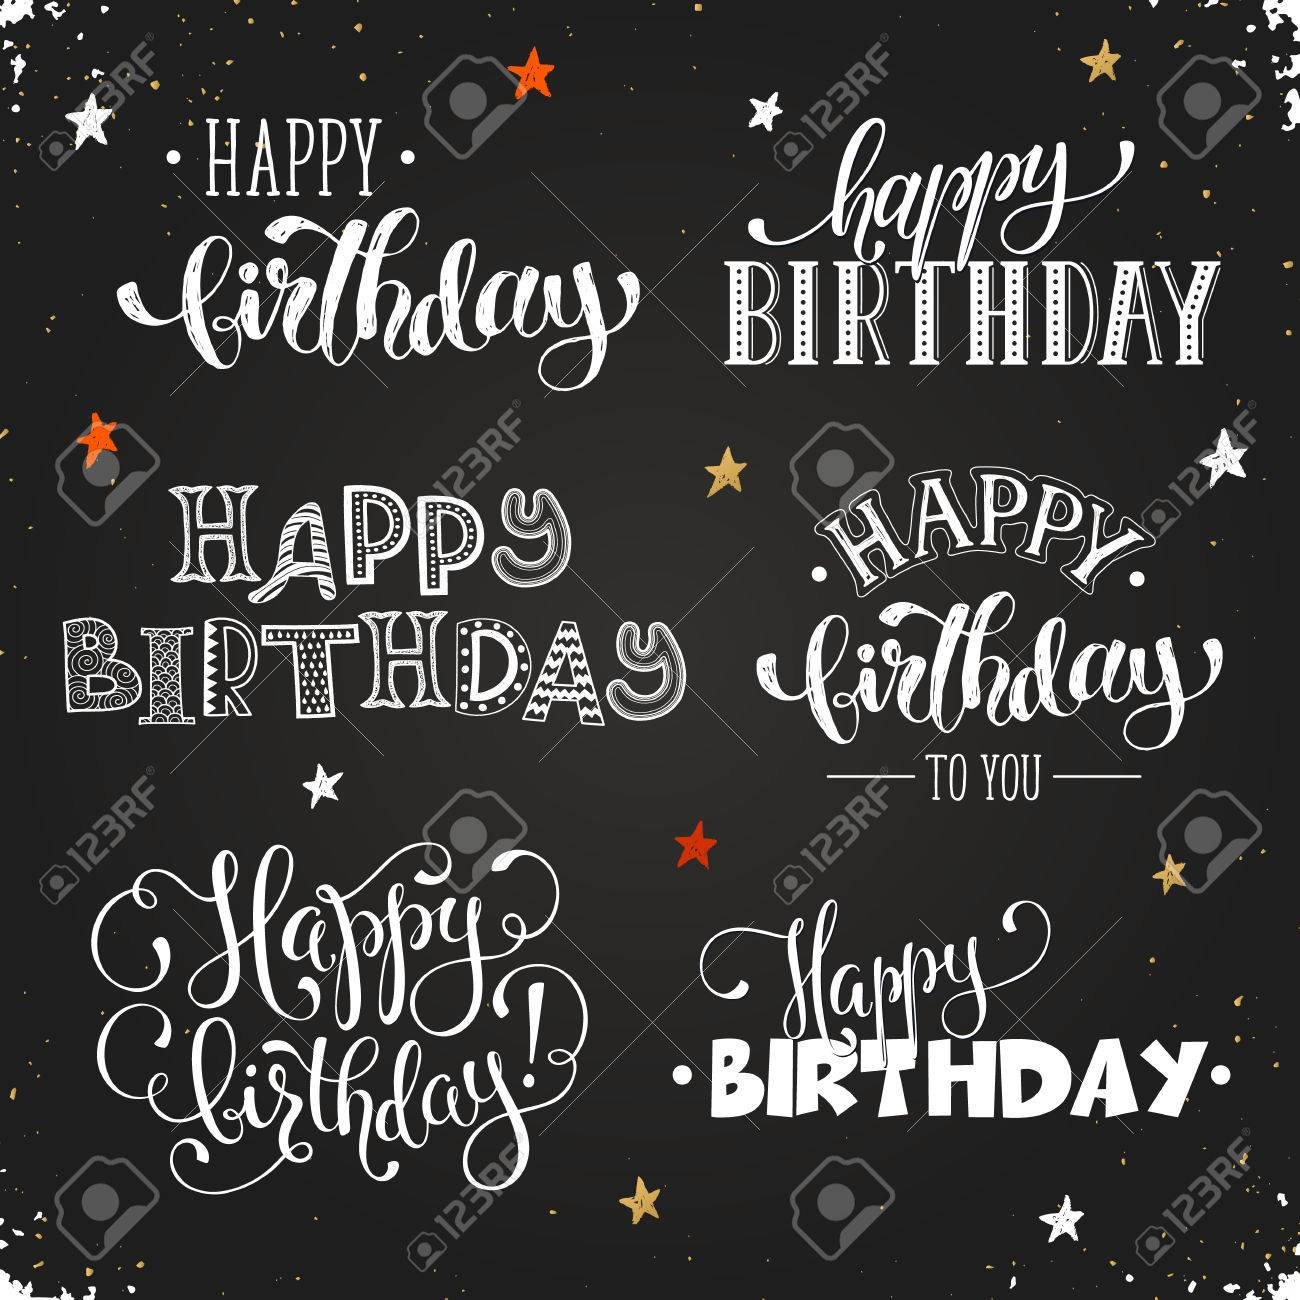 hand written happy birthday phrases greeting card text templates